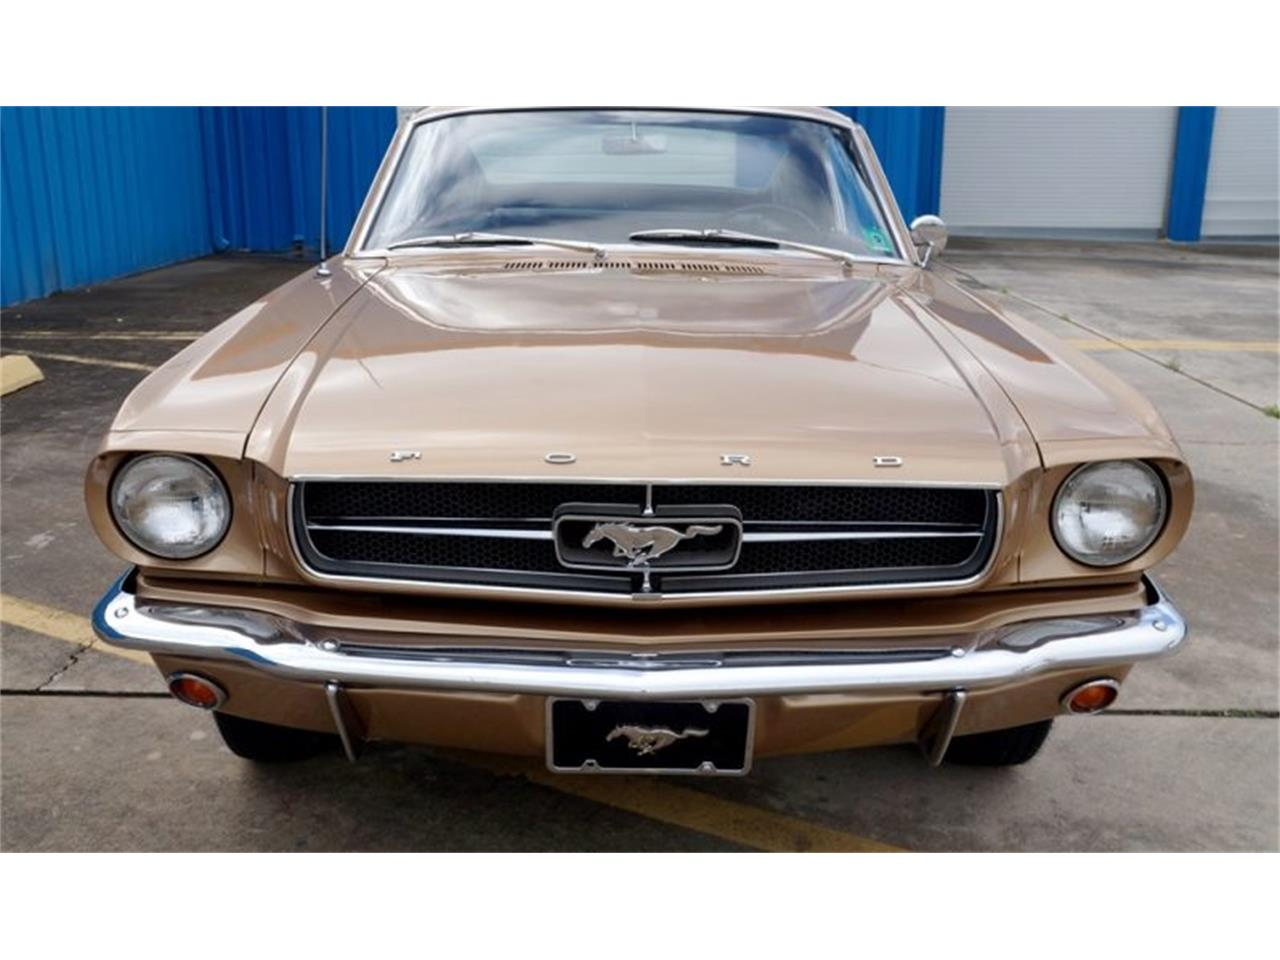 Large Picture of '65 Mustang located in Indianapolis Indiana - $37,500.00 Offered by a Private Seller - Q6QR